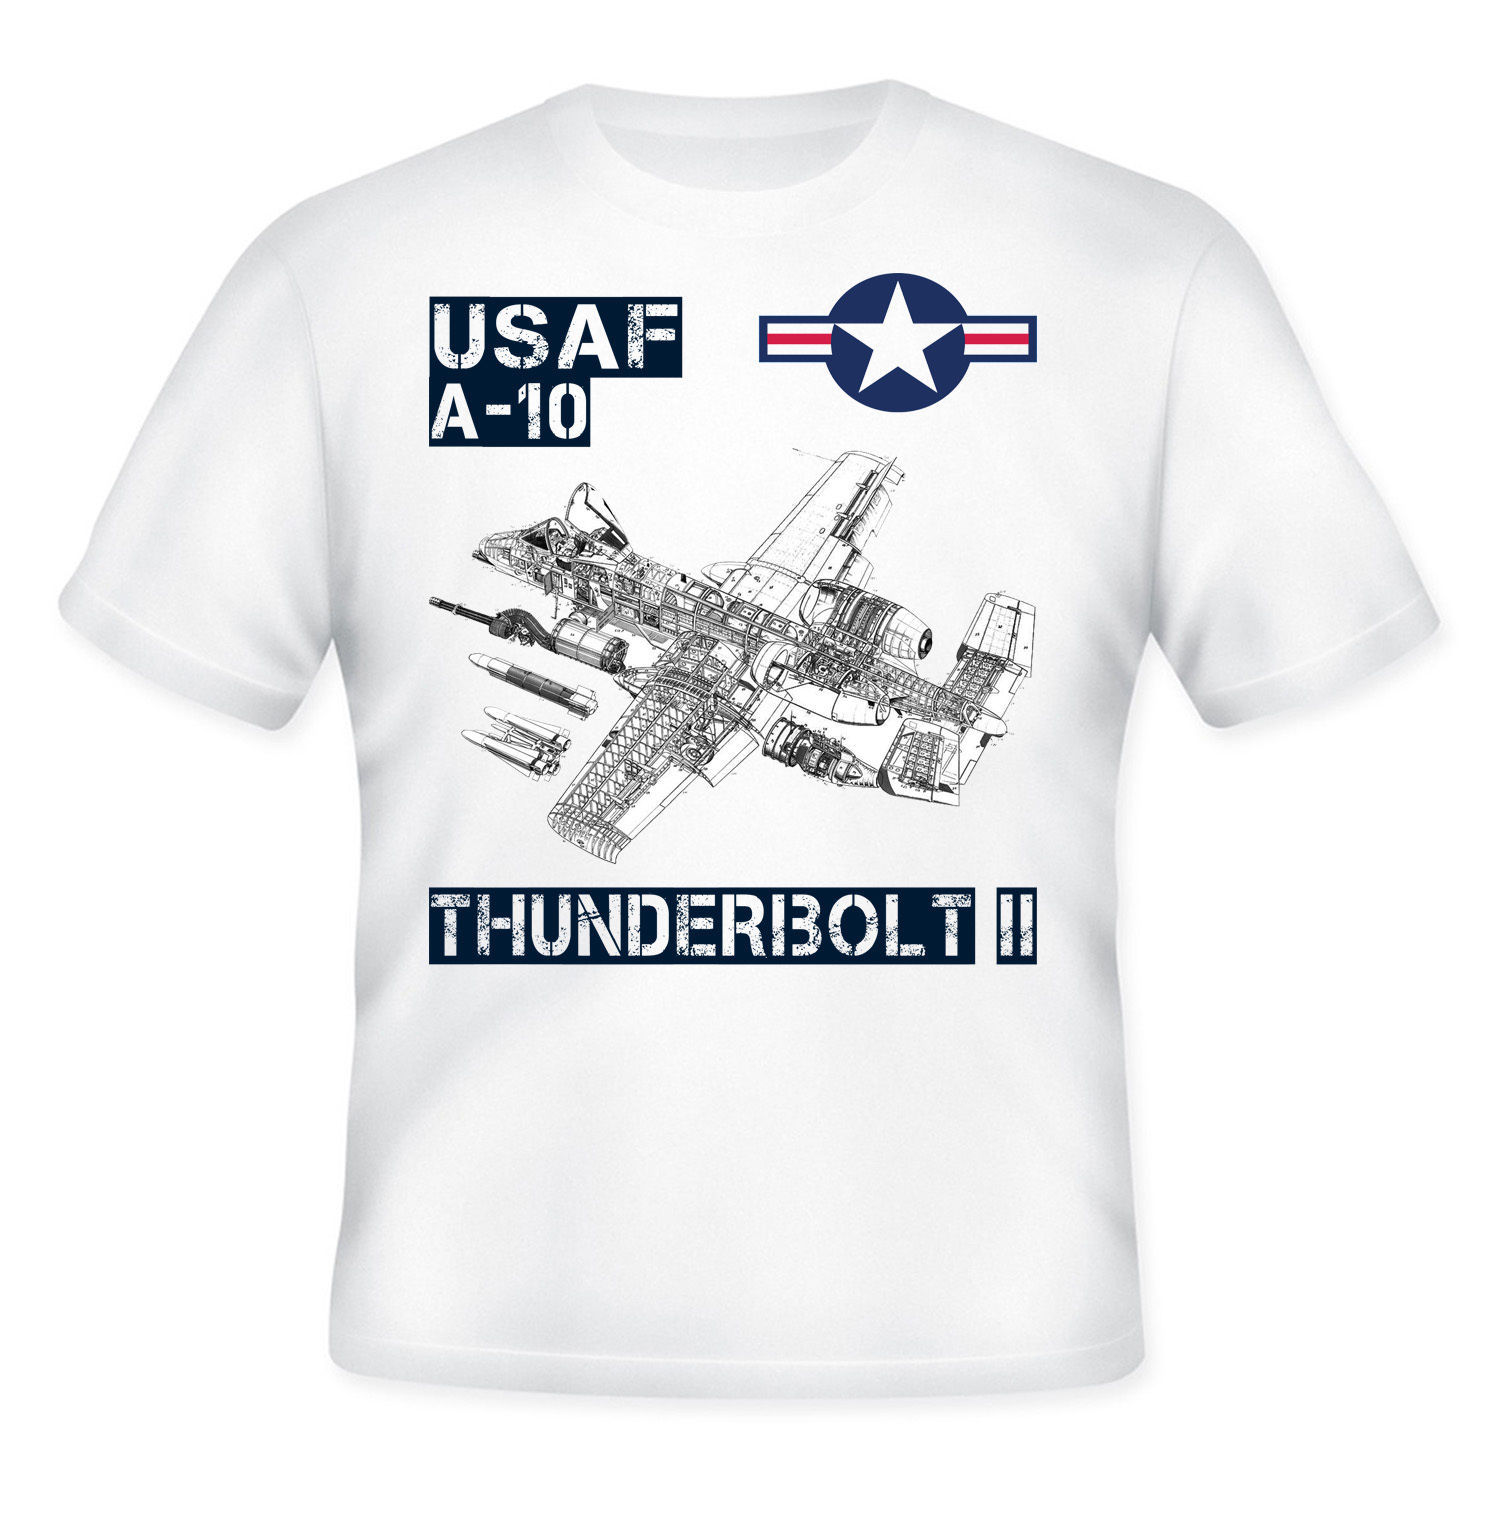 Primary image for USAF A-10 THUNDERBOLT II - NEW COTTON QUOTE T-SHIRT - S-M-L-XL-XXL